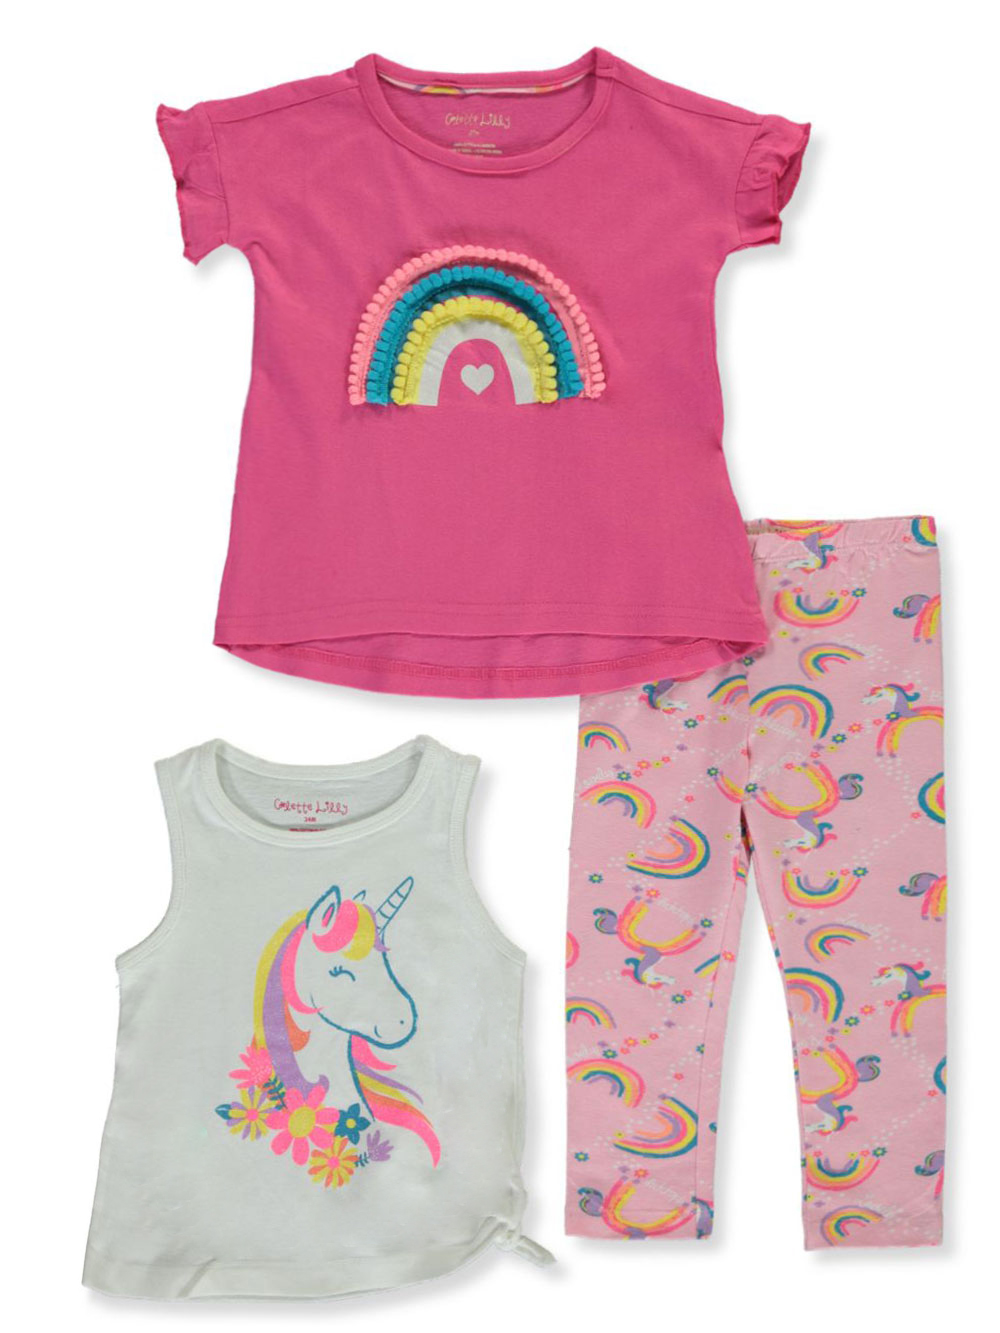 Colette Lilly Girls 2-Piece Leggings Set Outfit